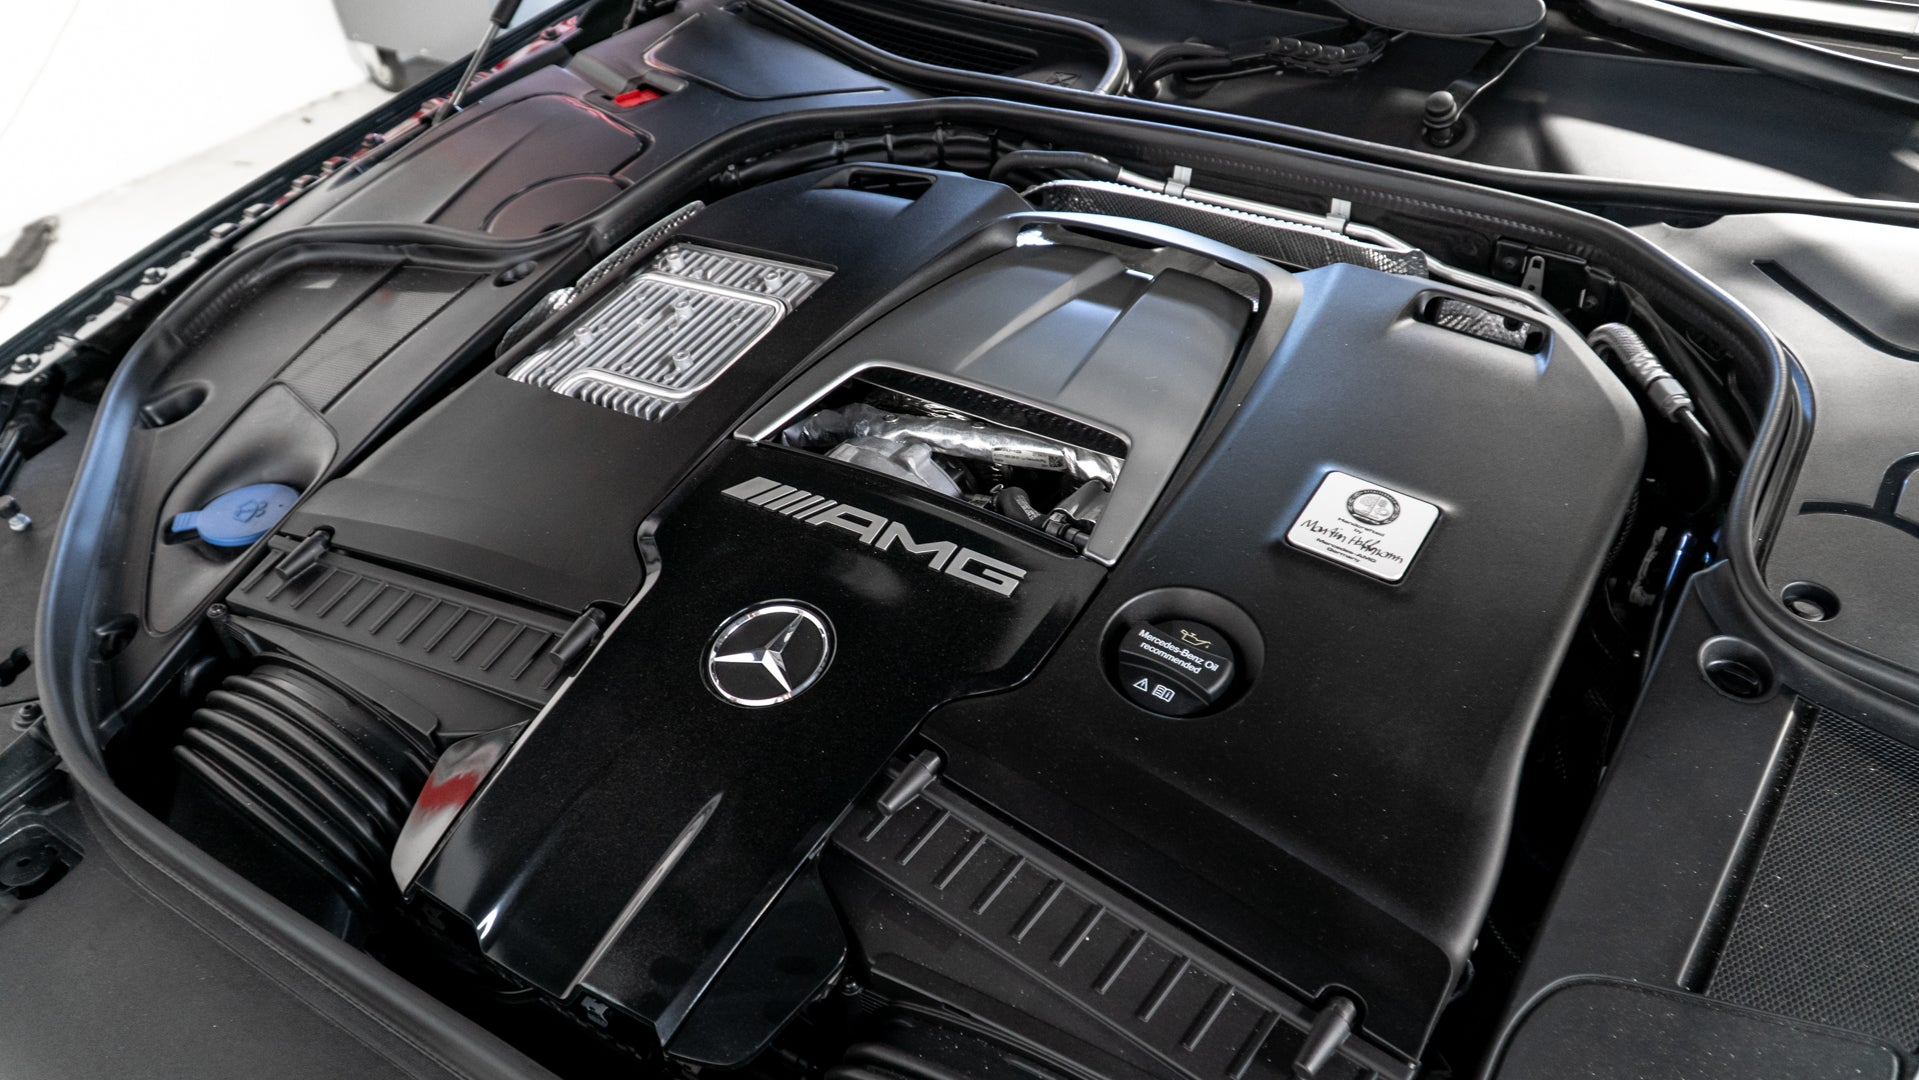 Mercedes AMG E63 S (W213) ECU Tuning Software